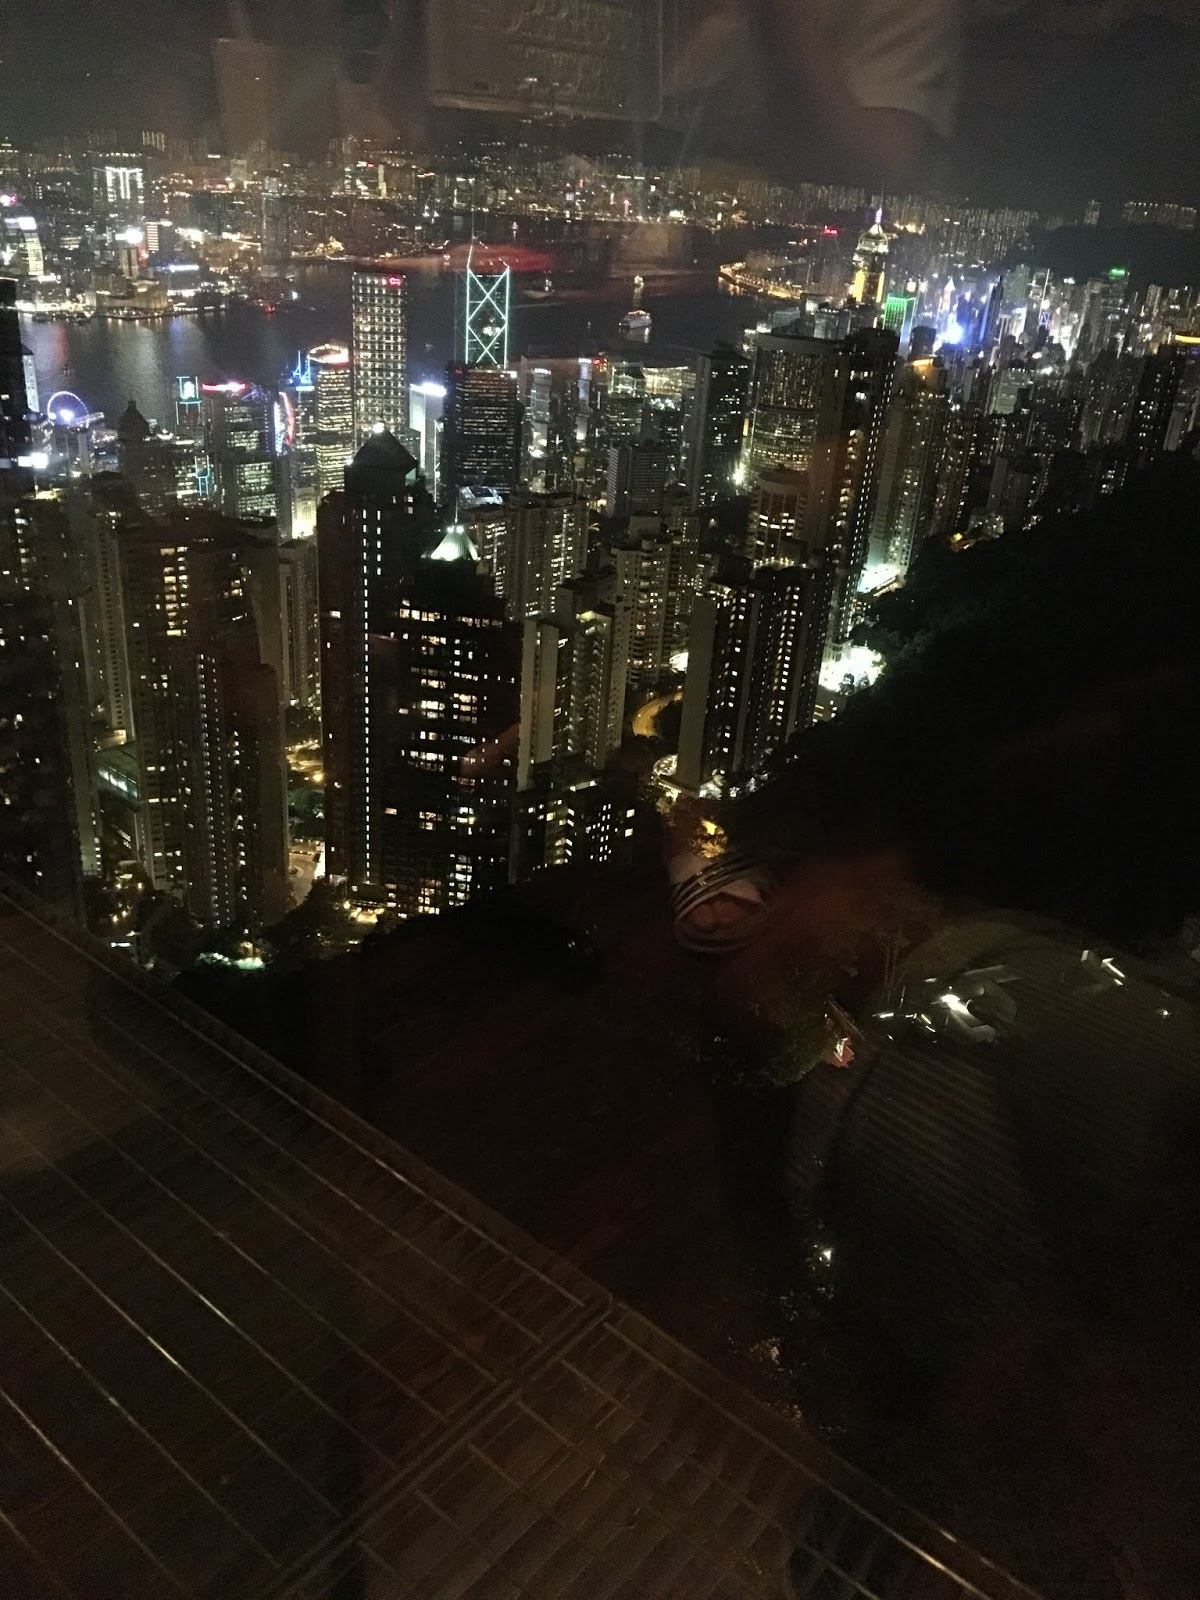 Victoria Peak Bubba Gump Shrimp Co Restaurant View - Aspiring Londoner